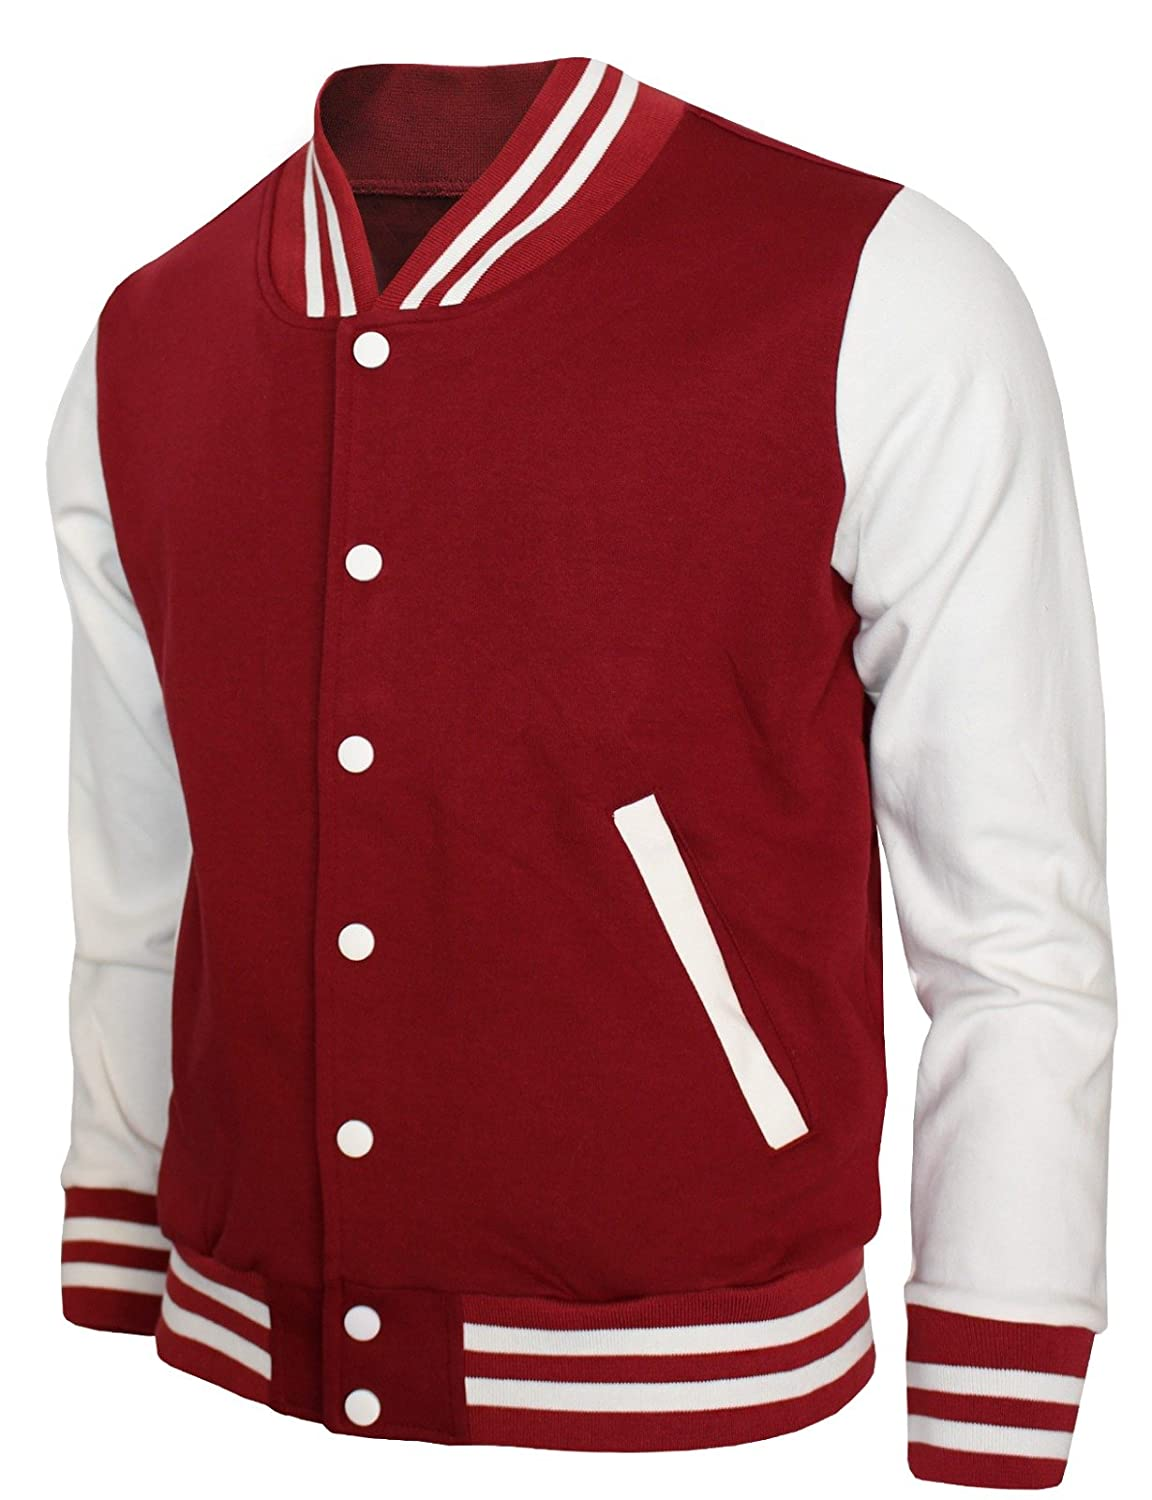 1950s Men's Clothing BCPOLO Baseball Jacket Varsity Baseball Cotton Jacket Letterman jacket 8 Colors $37.95 AT vintagedancer.com